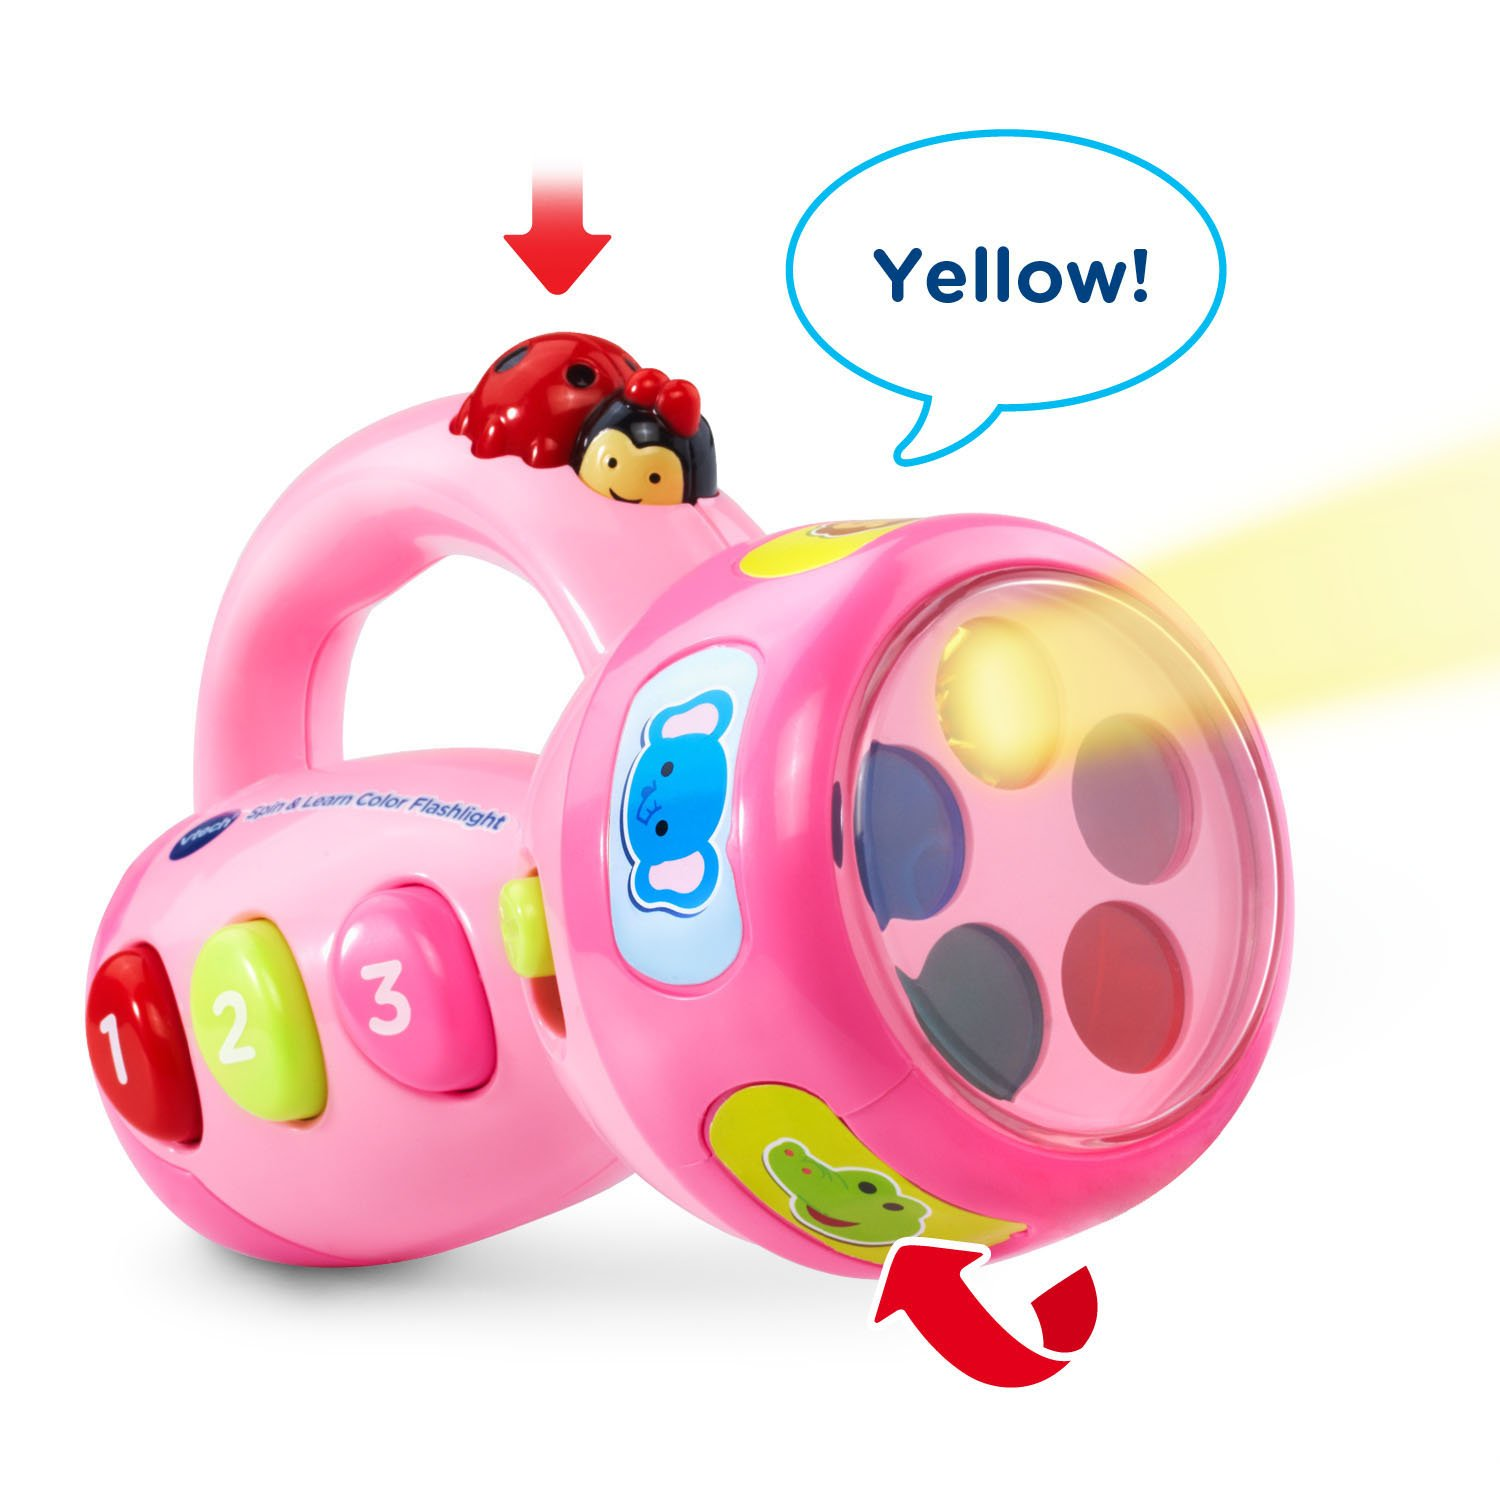 VTech Spin and Learn Color Flashlight Amazon Exclusive, Pink by VTech (Image #2)